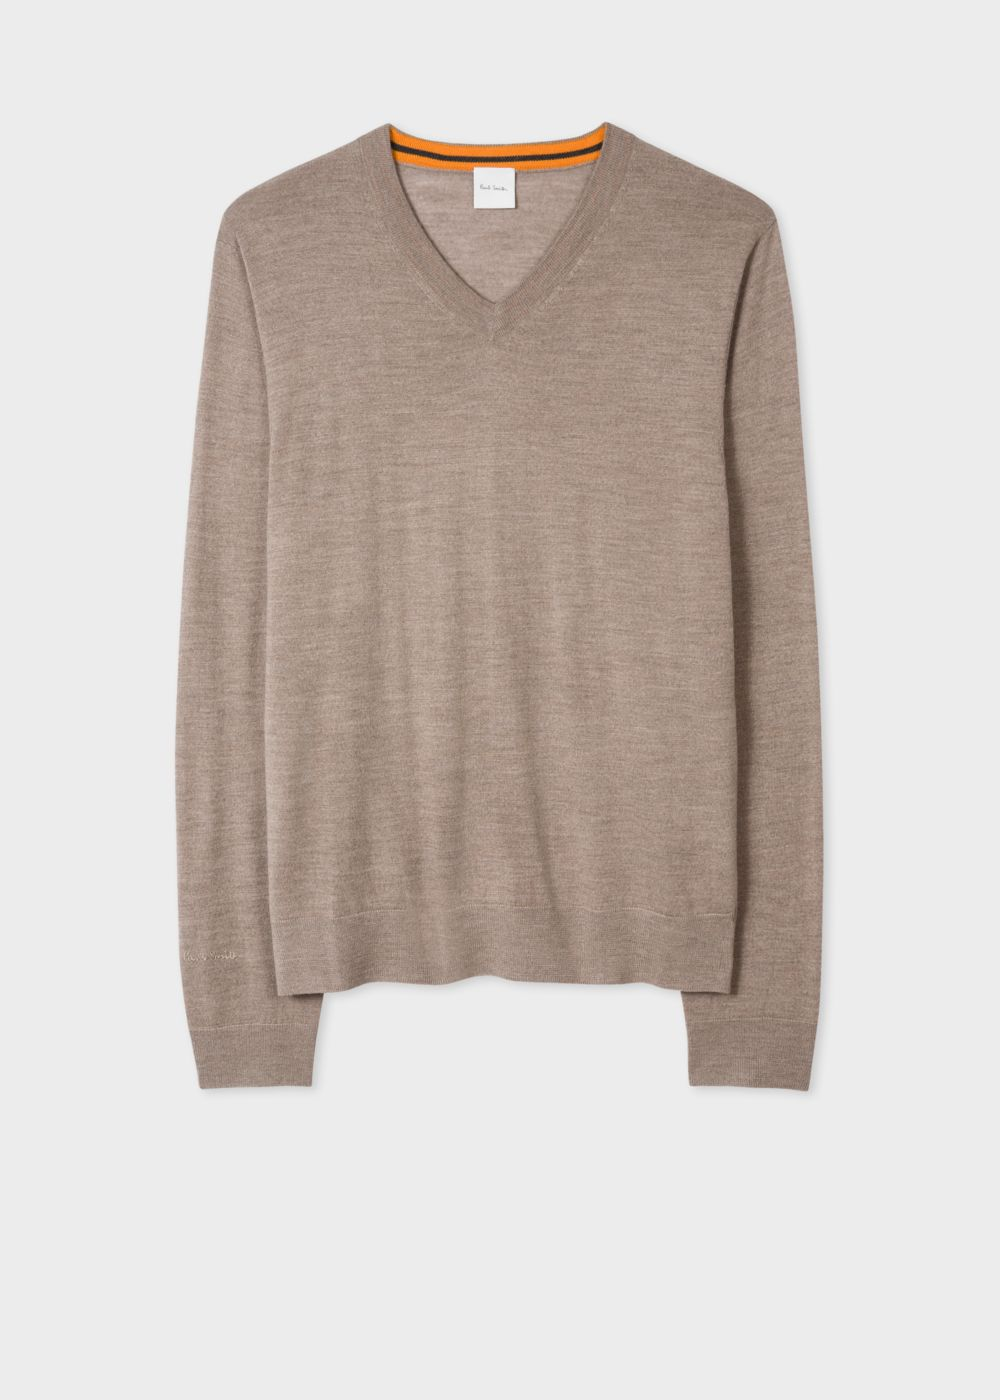 Paul Smith Men's Taupe Marl V-Neck Merino Wool Sweater